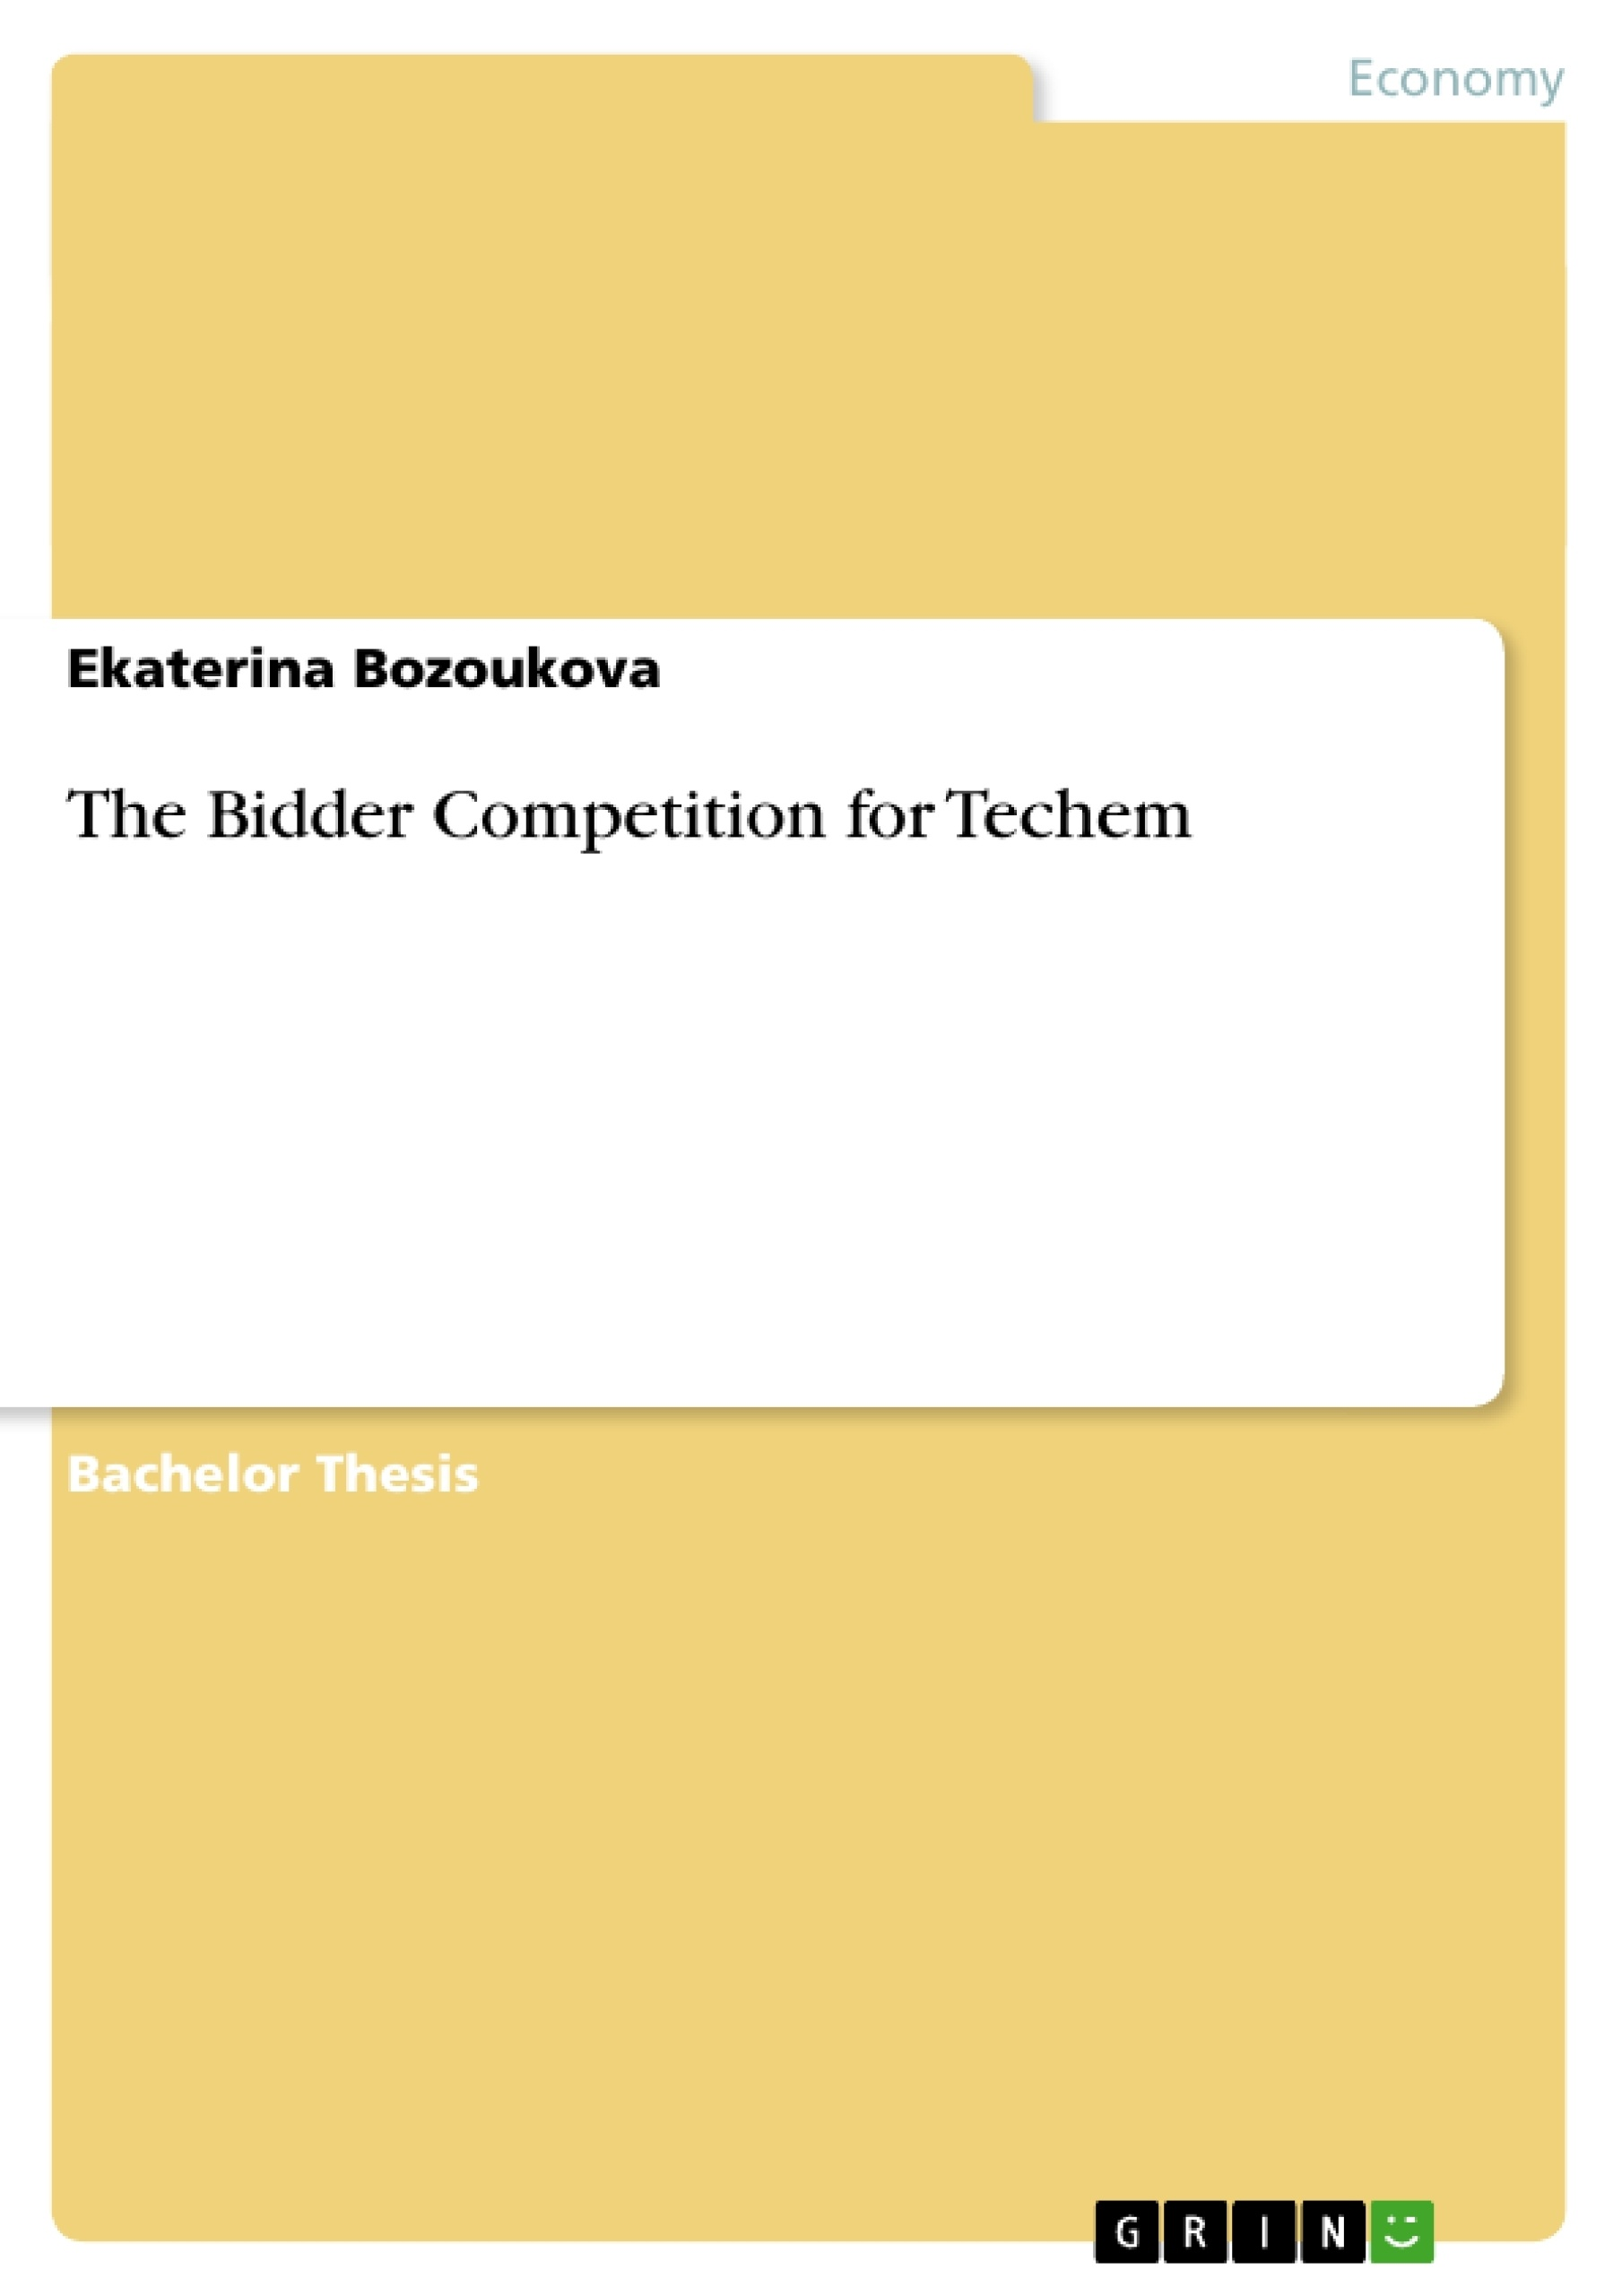 Titre: The Bidder Competition for Techem